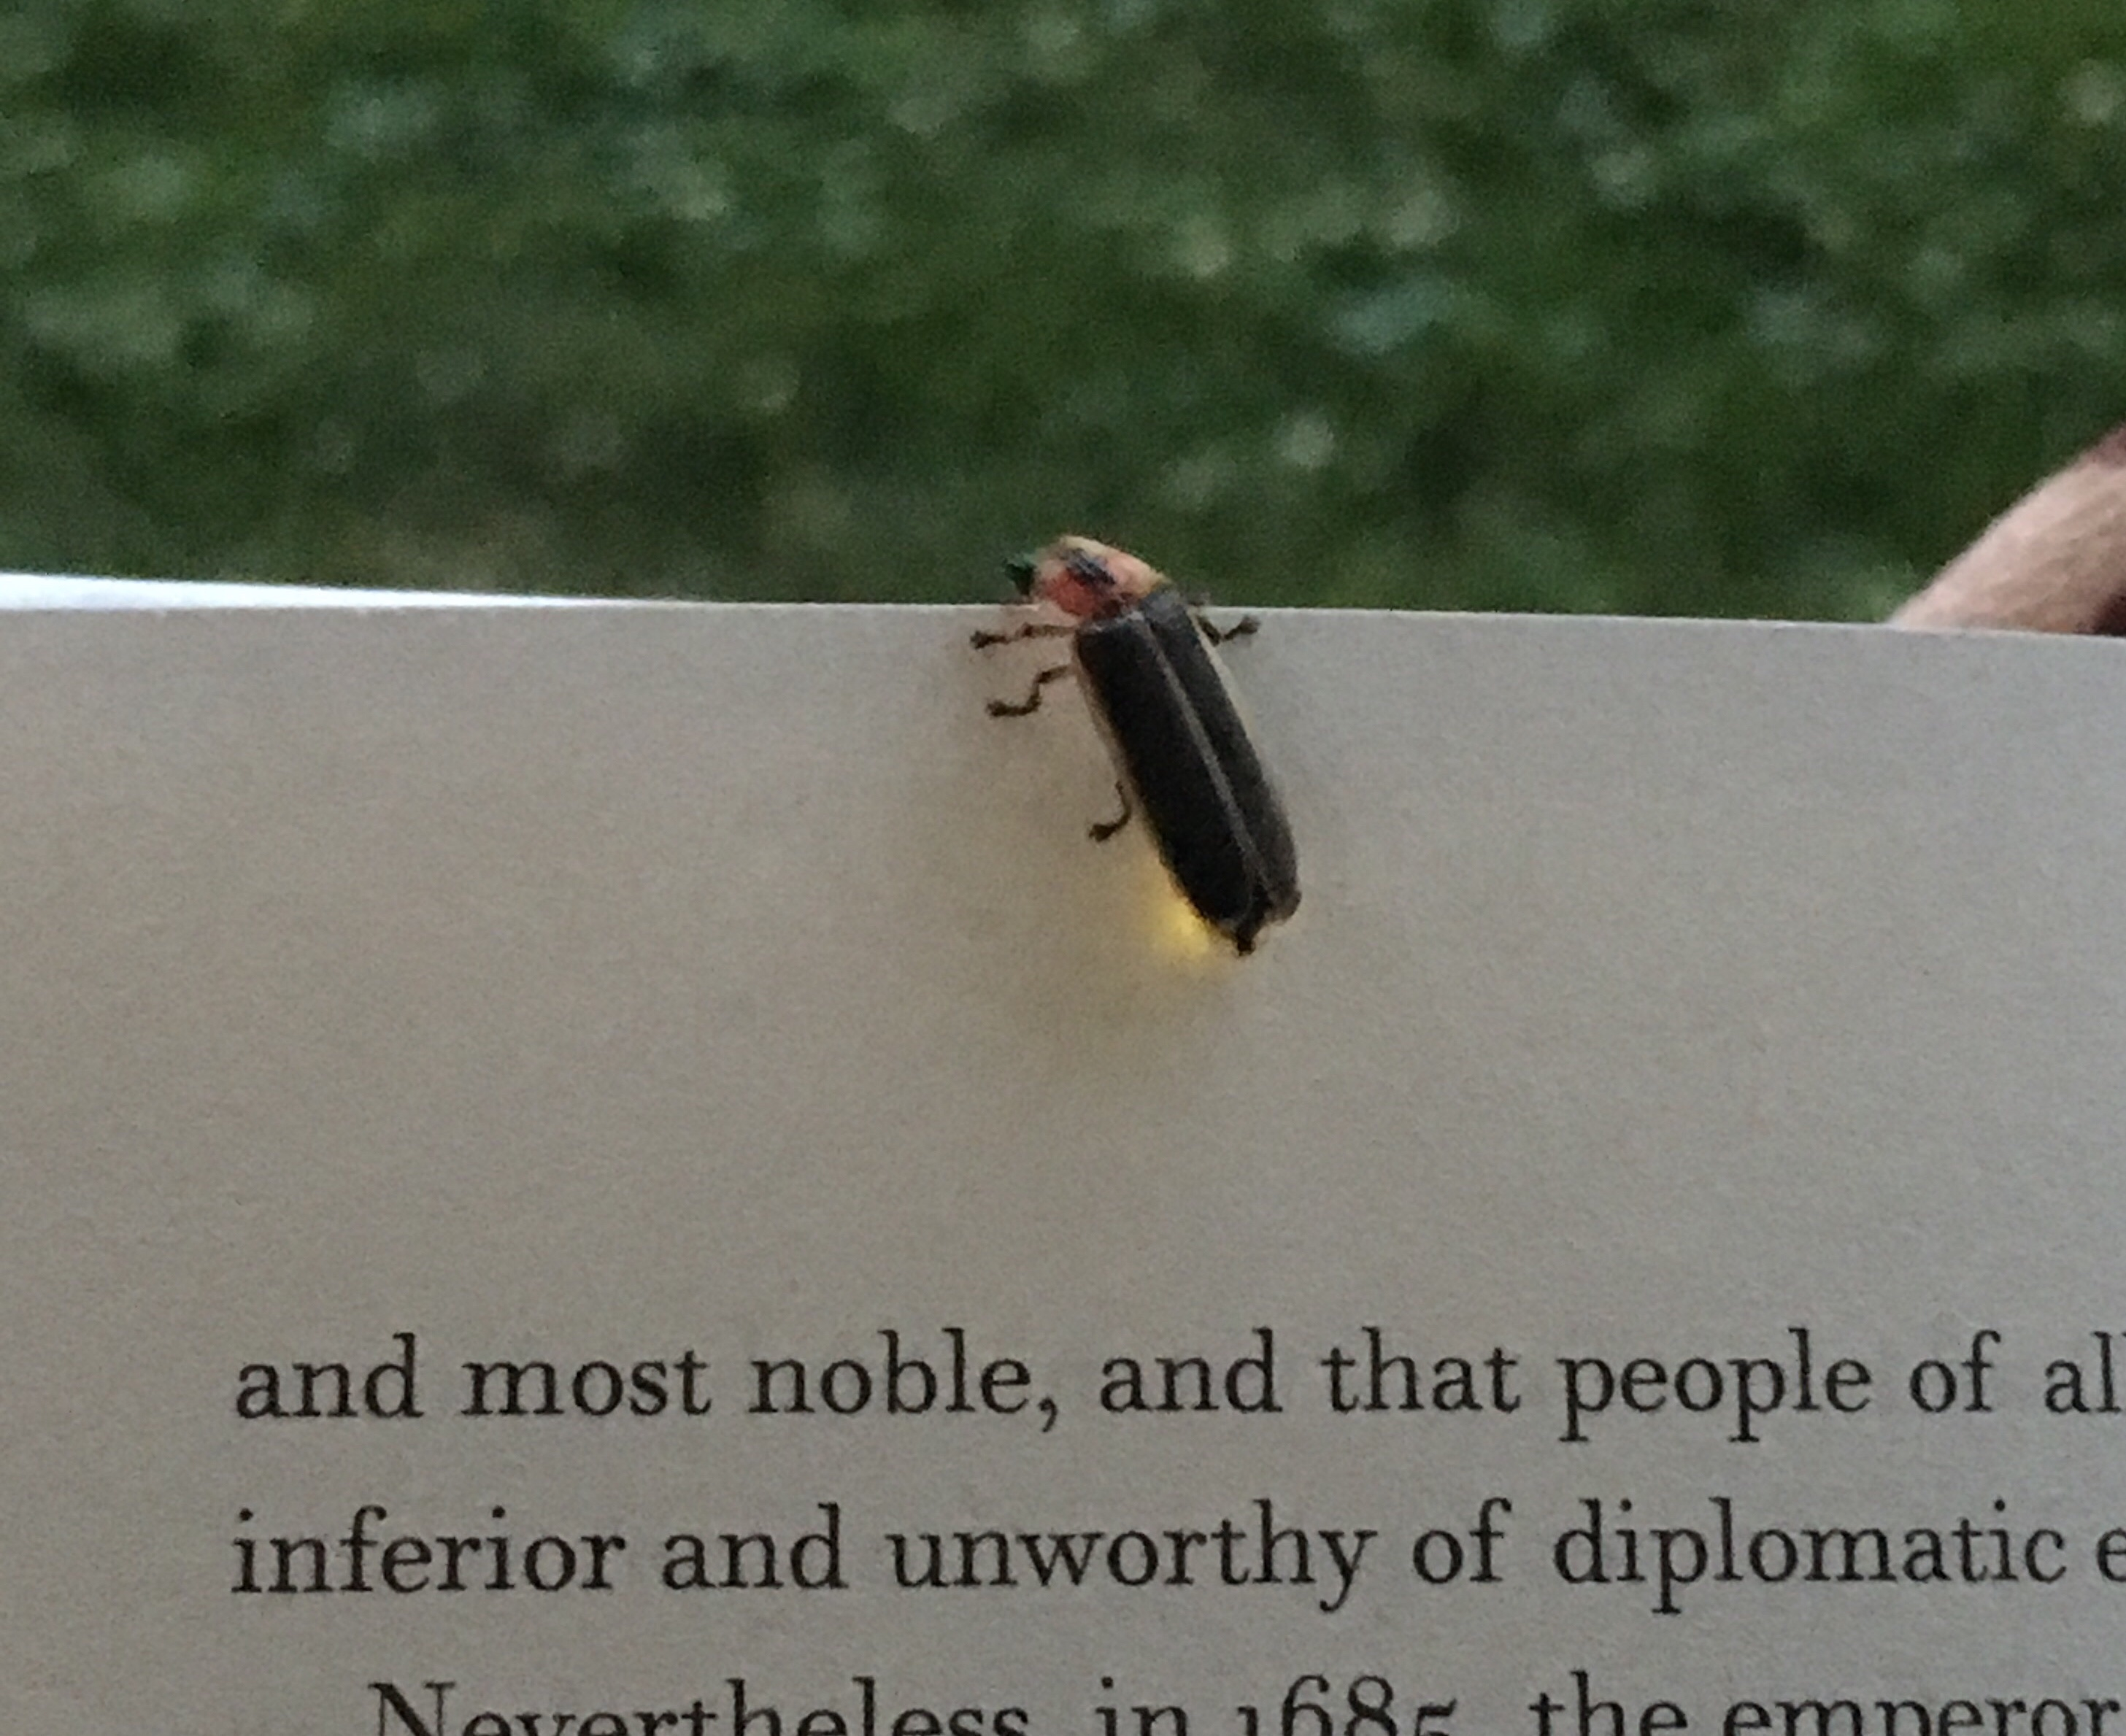 firefly on a book